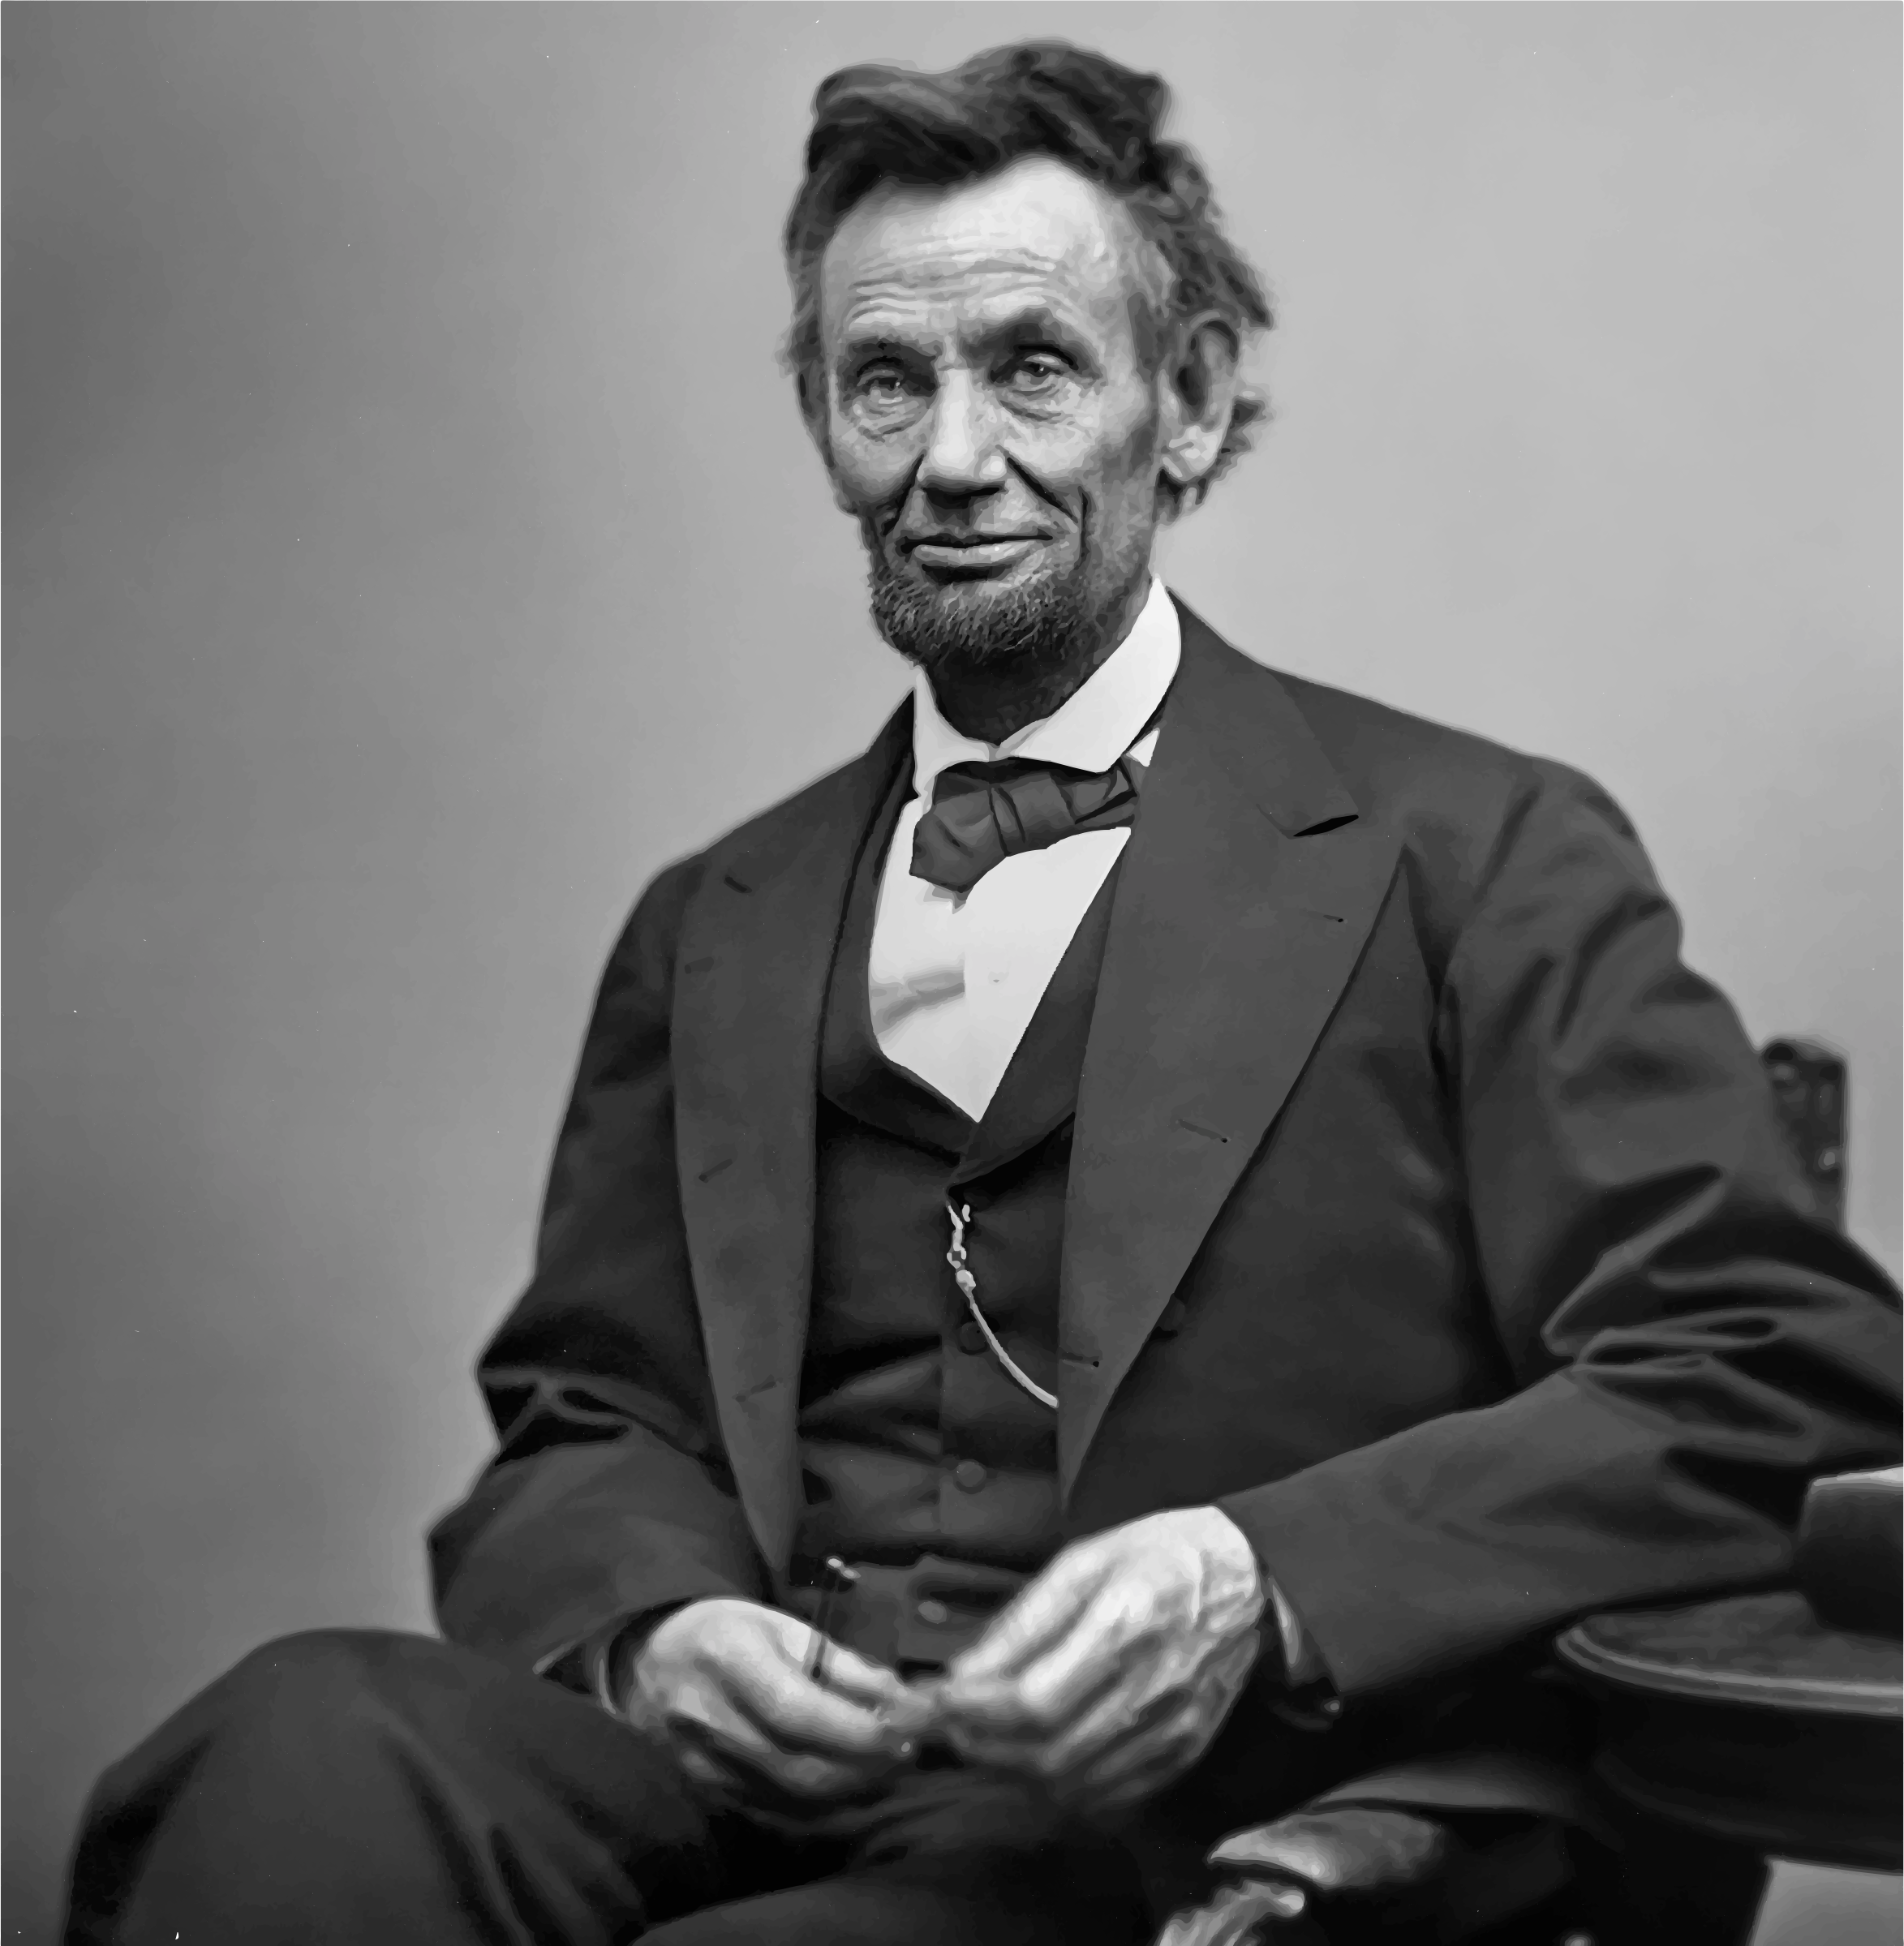 Lincoln Smiling